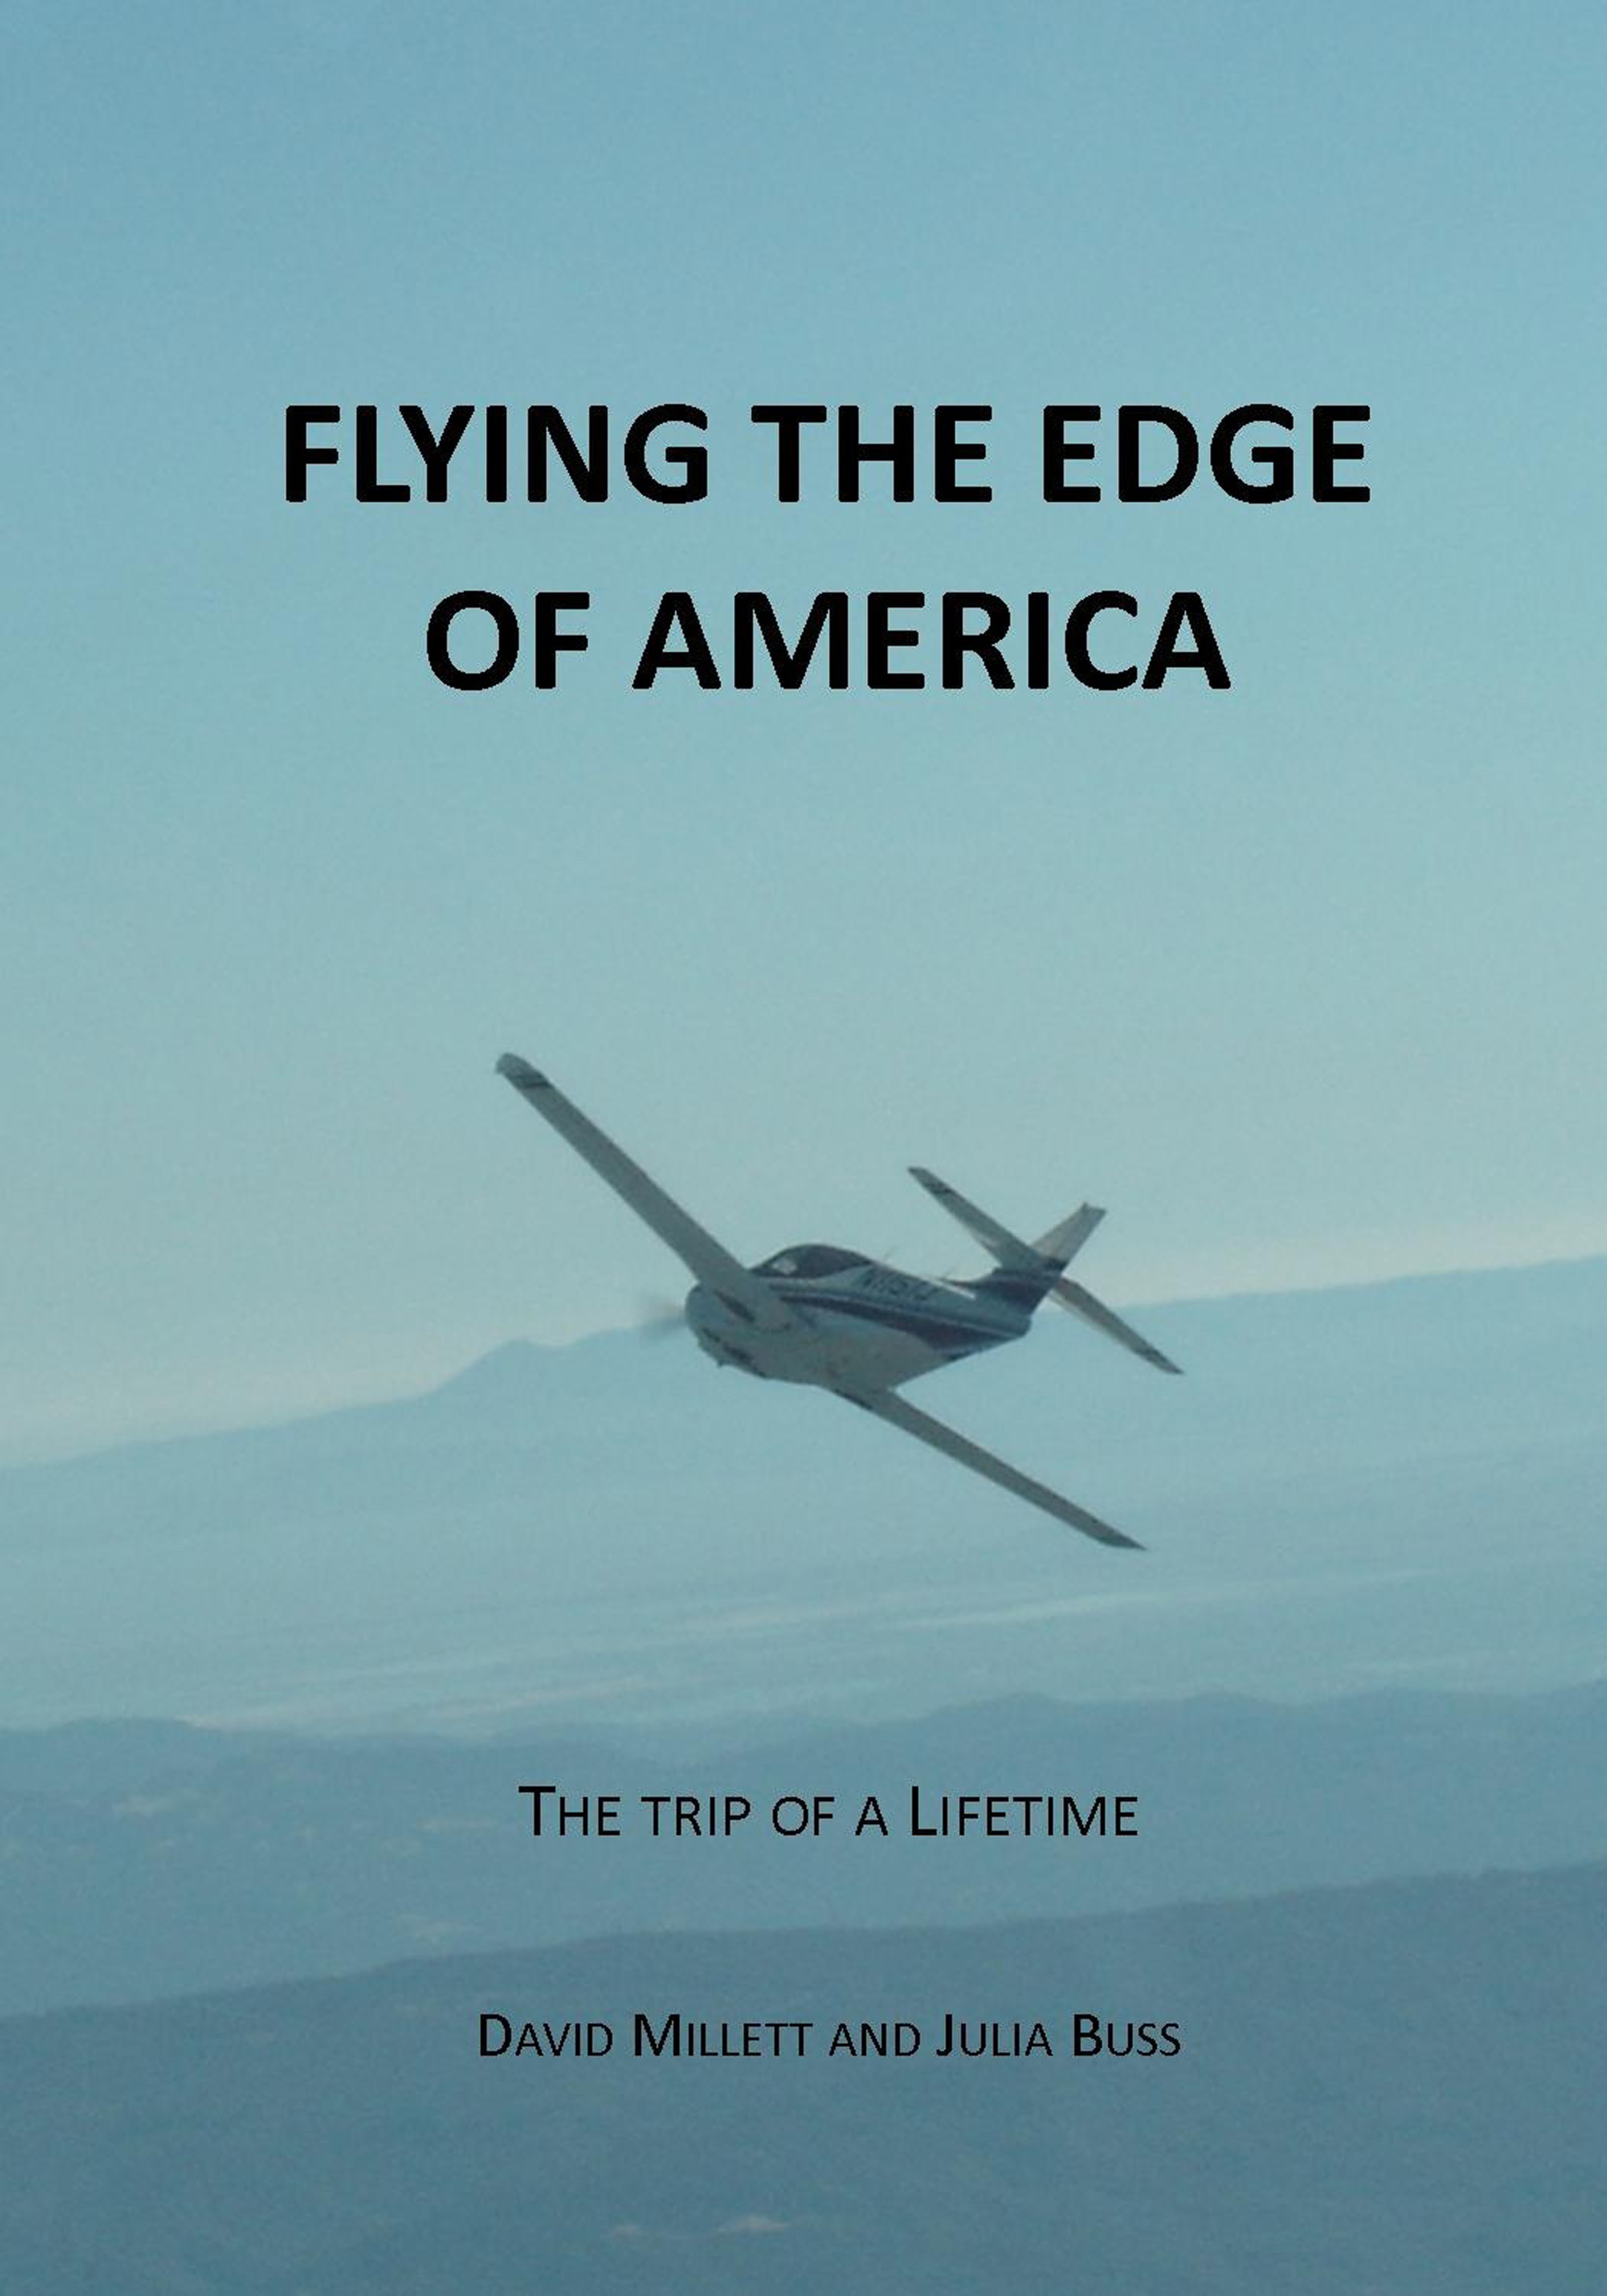 Flying the Edge of America, the trip of a lifetime